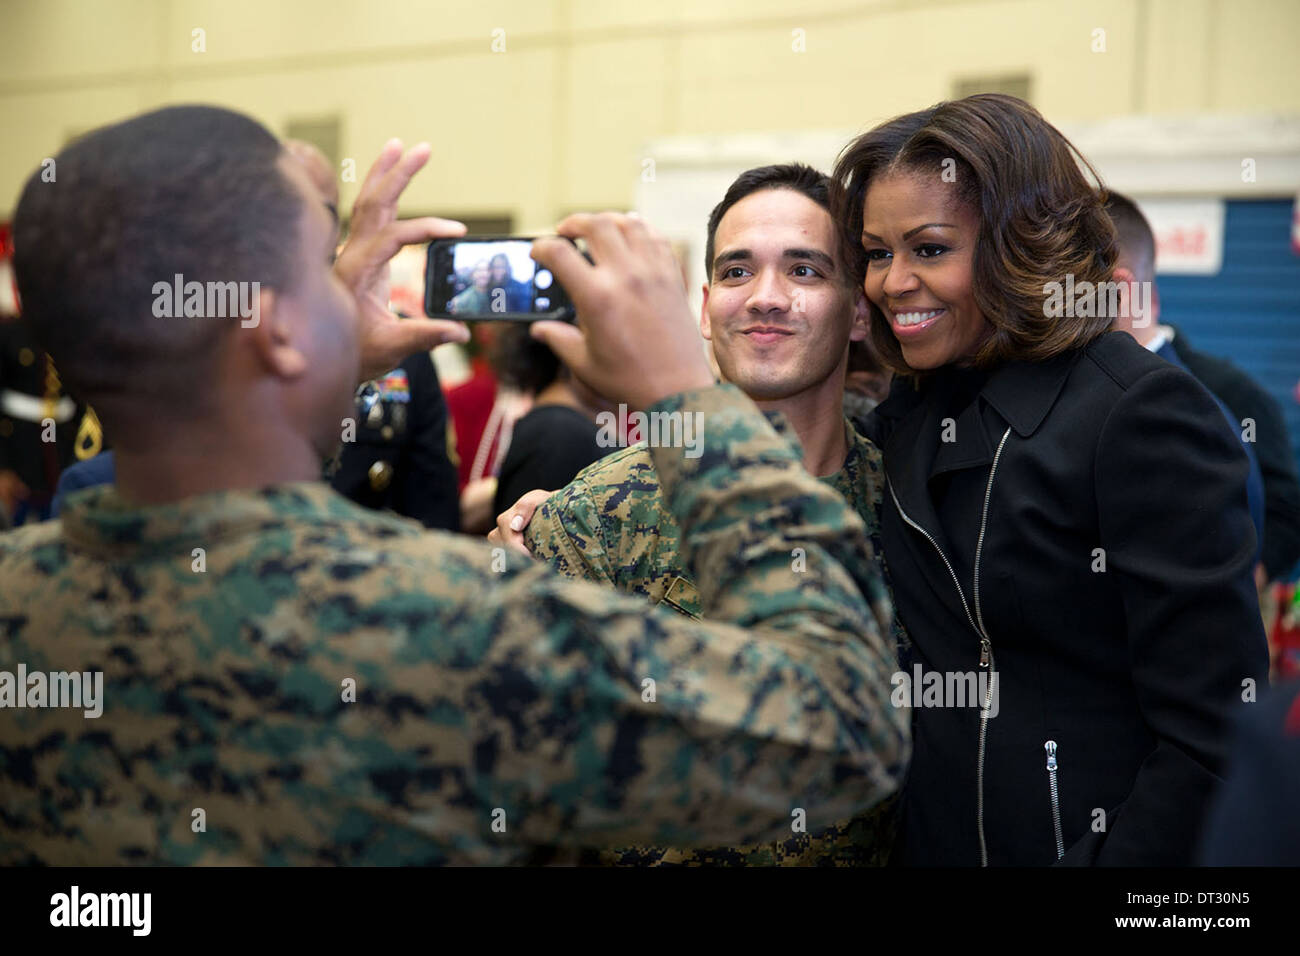 US First Lady Michelle Obama poses for a picture with service members after a Toys for Tots service project at the Joint Base Anacostia-Bolling Toys for Tots Distribution Center December 19, 2013 in Washington, DC. - Stock Image